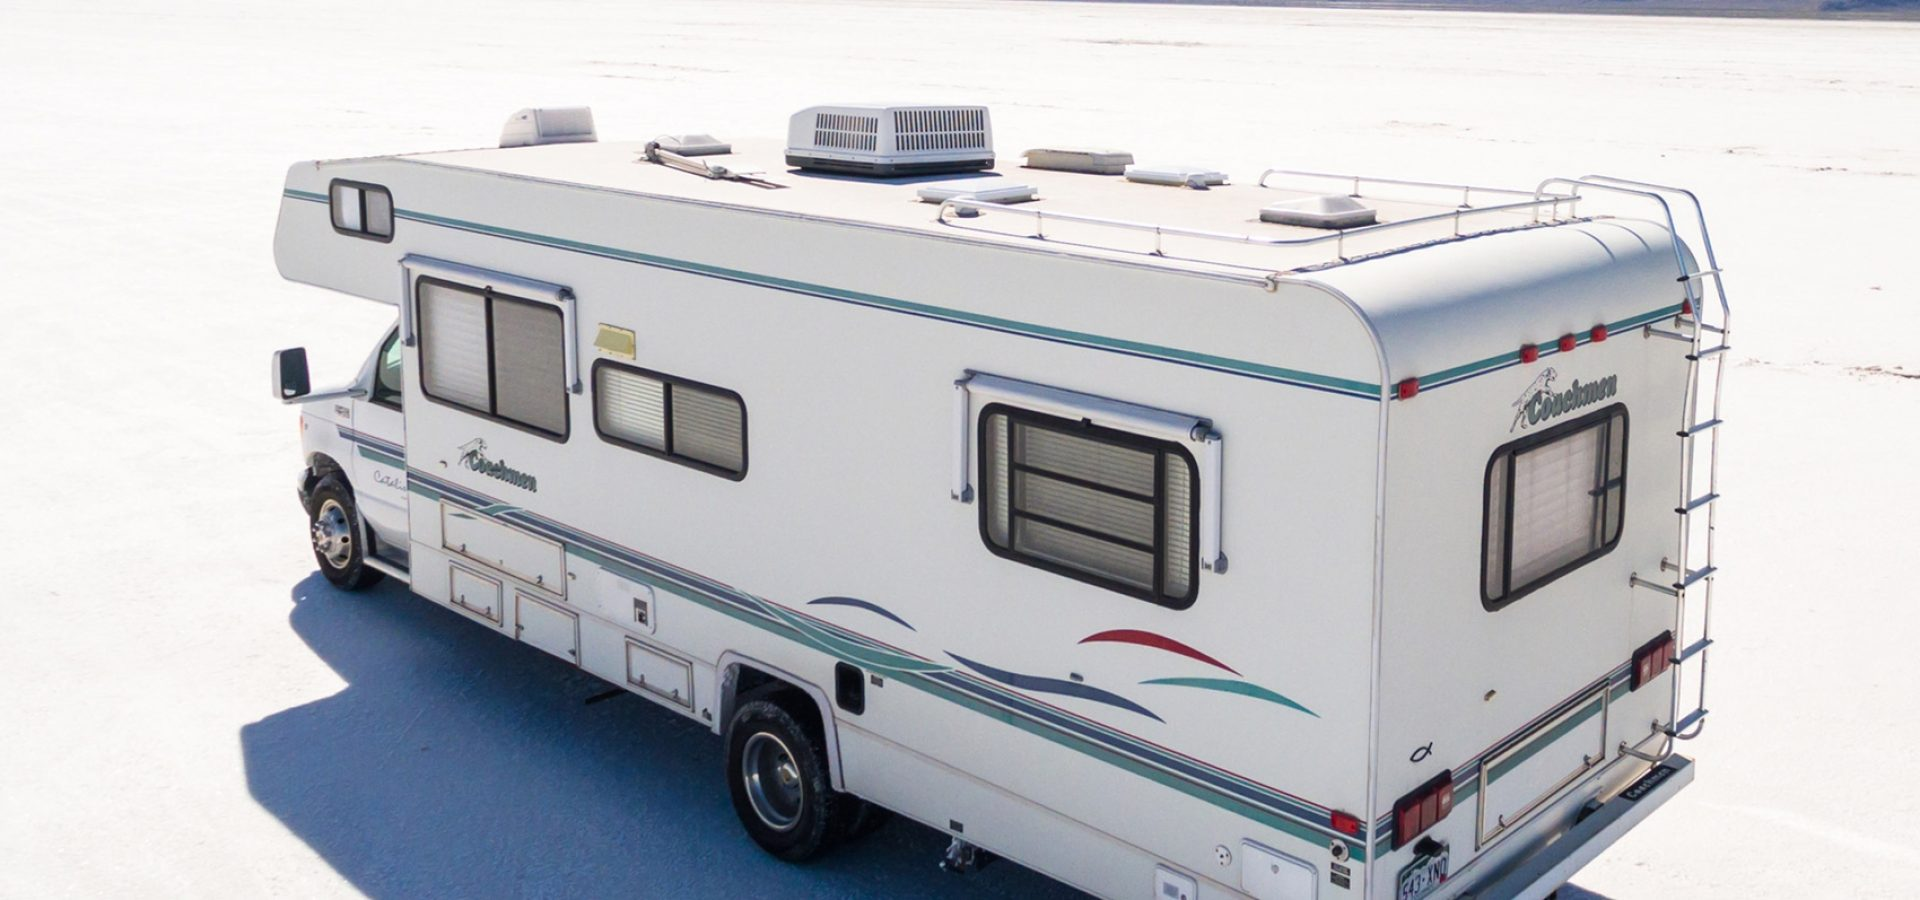 Call us for Furnace Maintenance on Your RV!